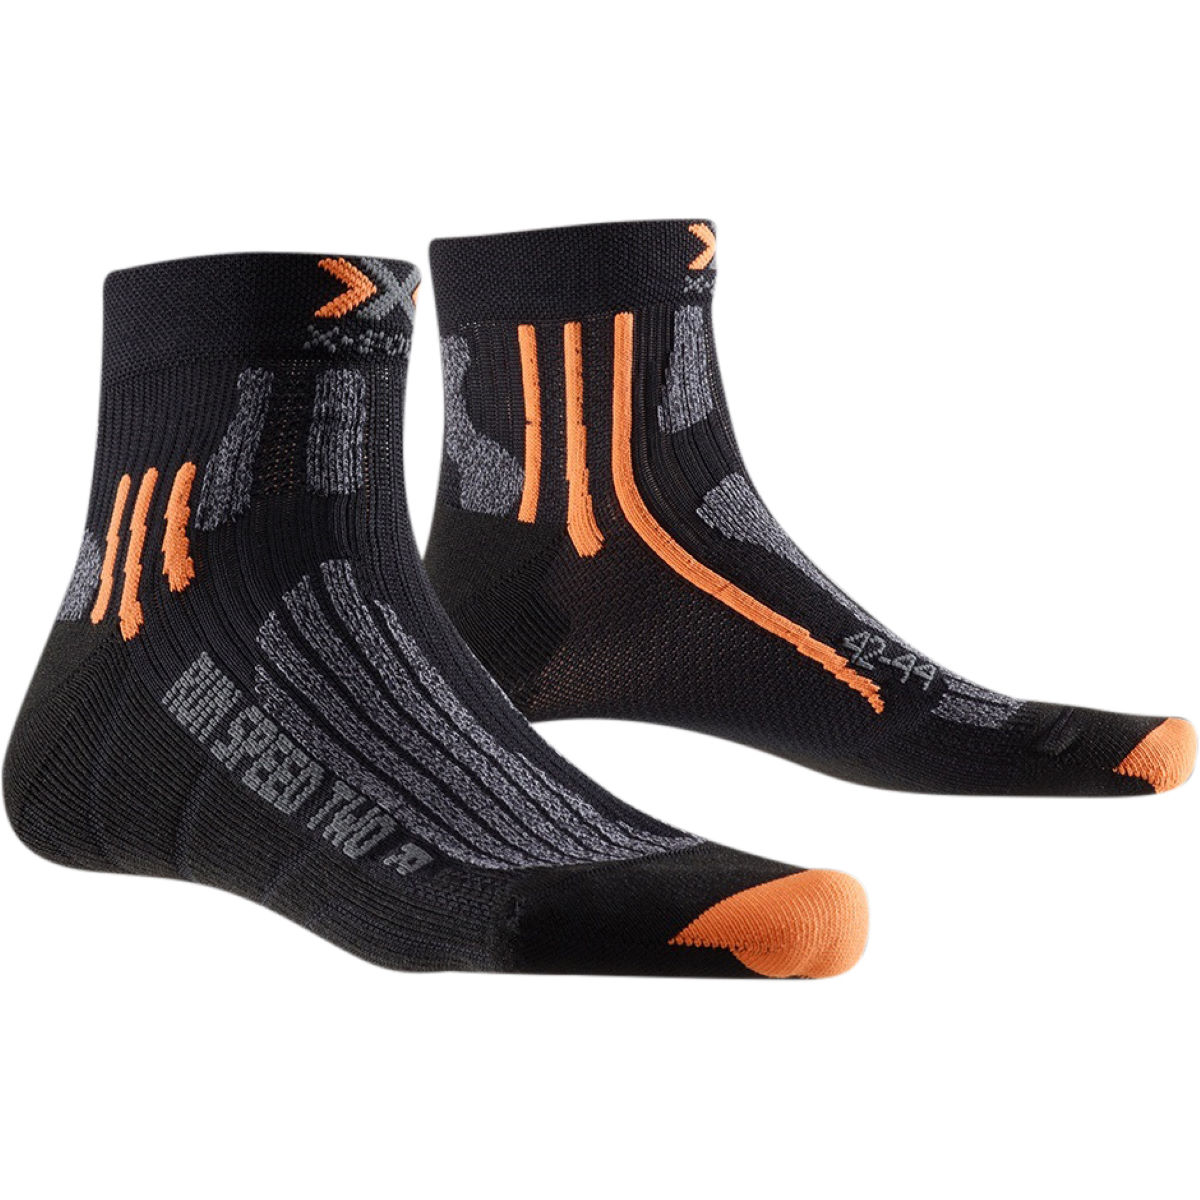 Chaussettes X-Socks Run Speed Two - 3-5.5 UK Noir/Gris Chaussettes de running